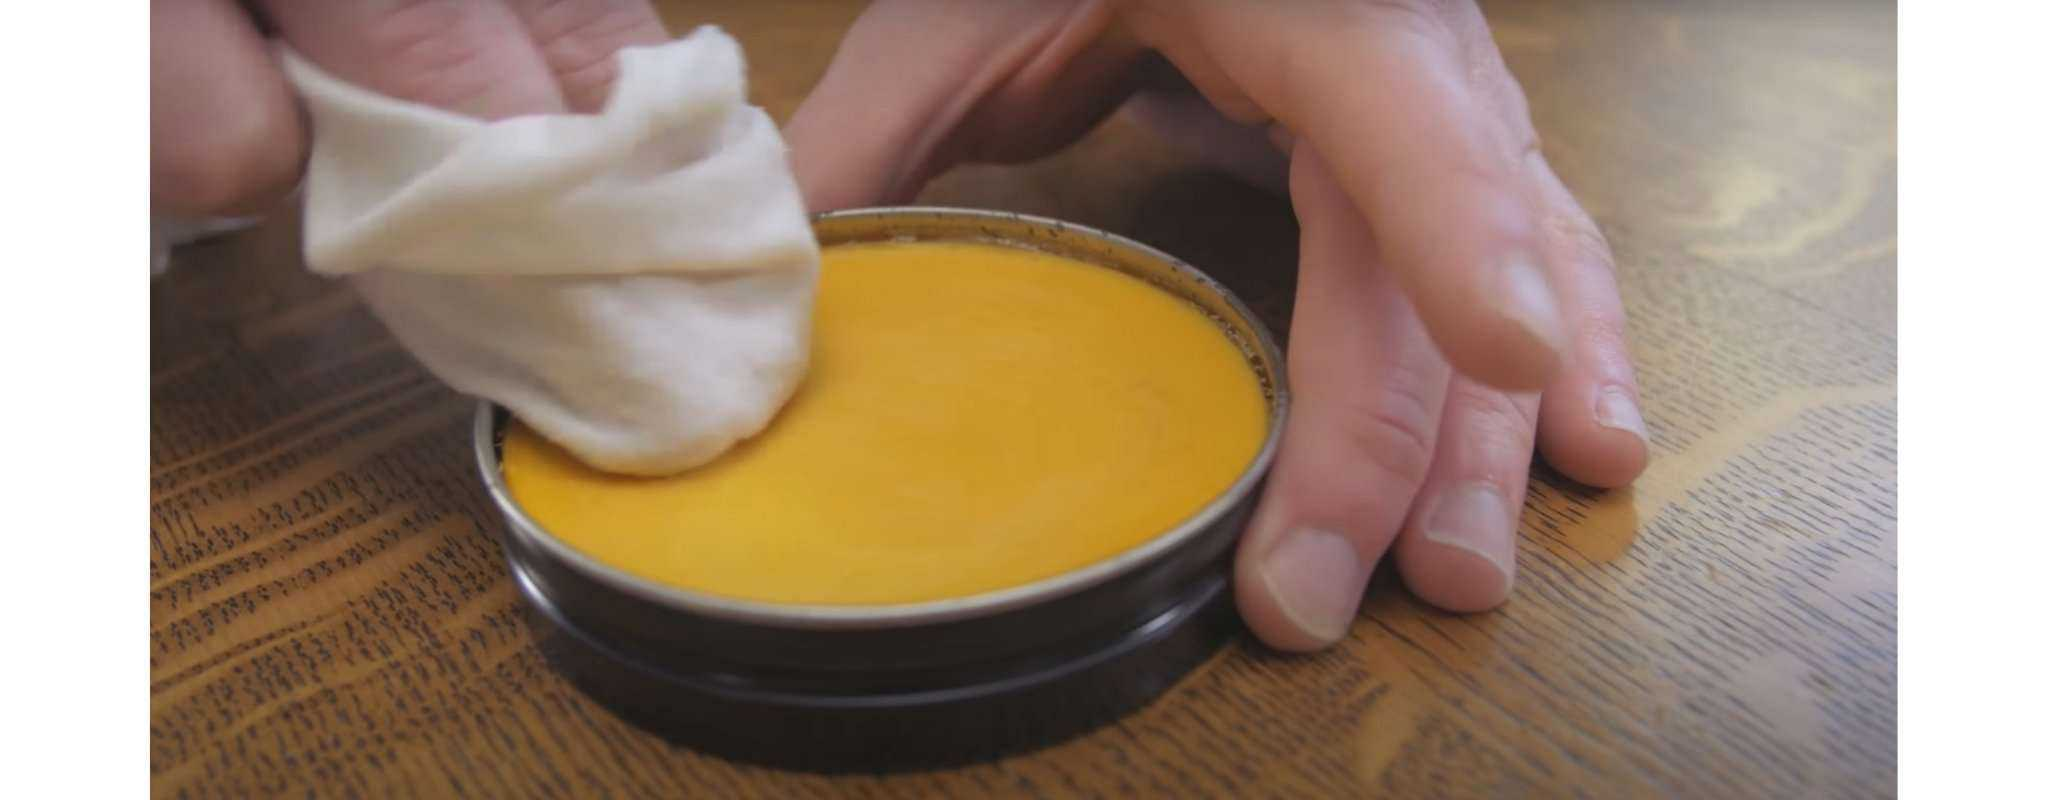 cleaning leather boots with saddle soap